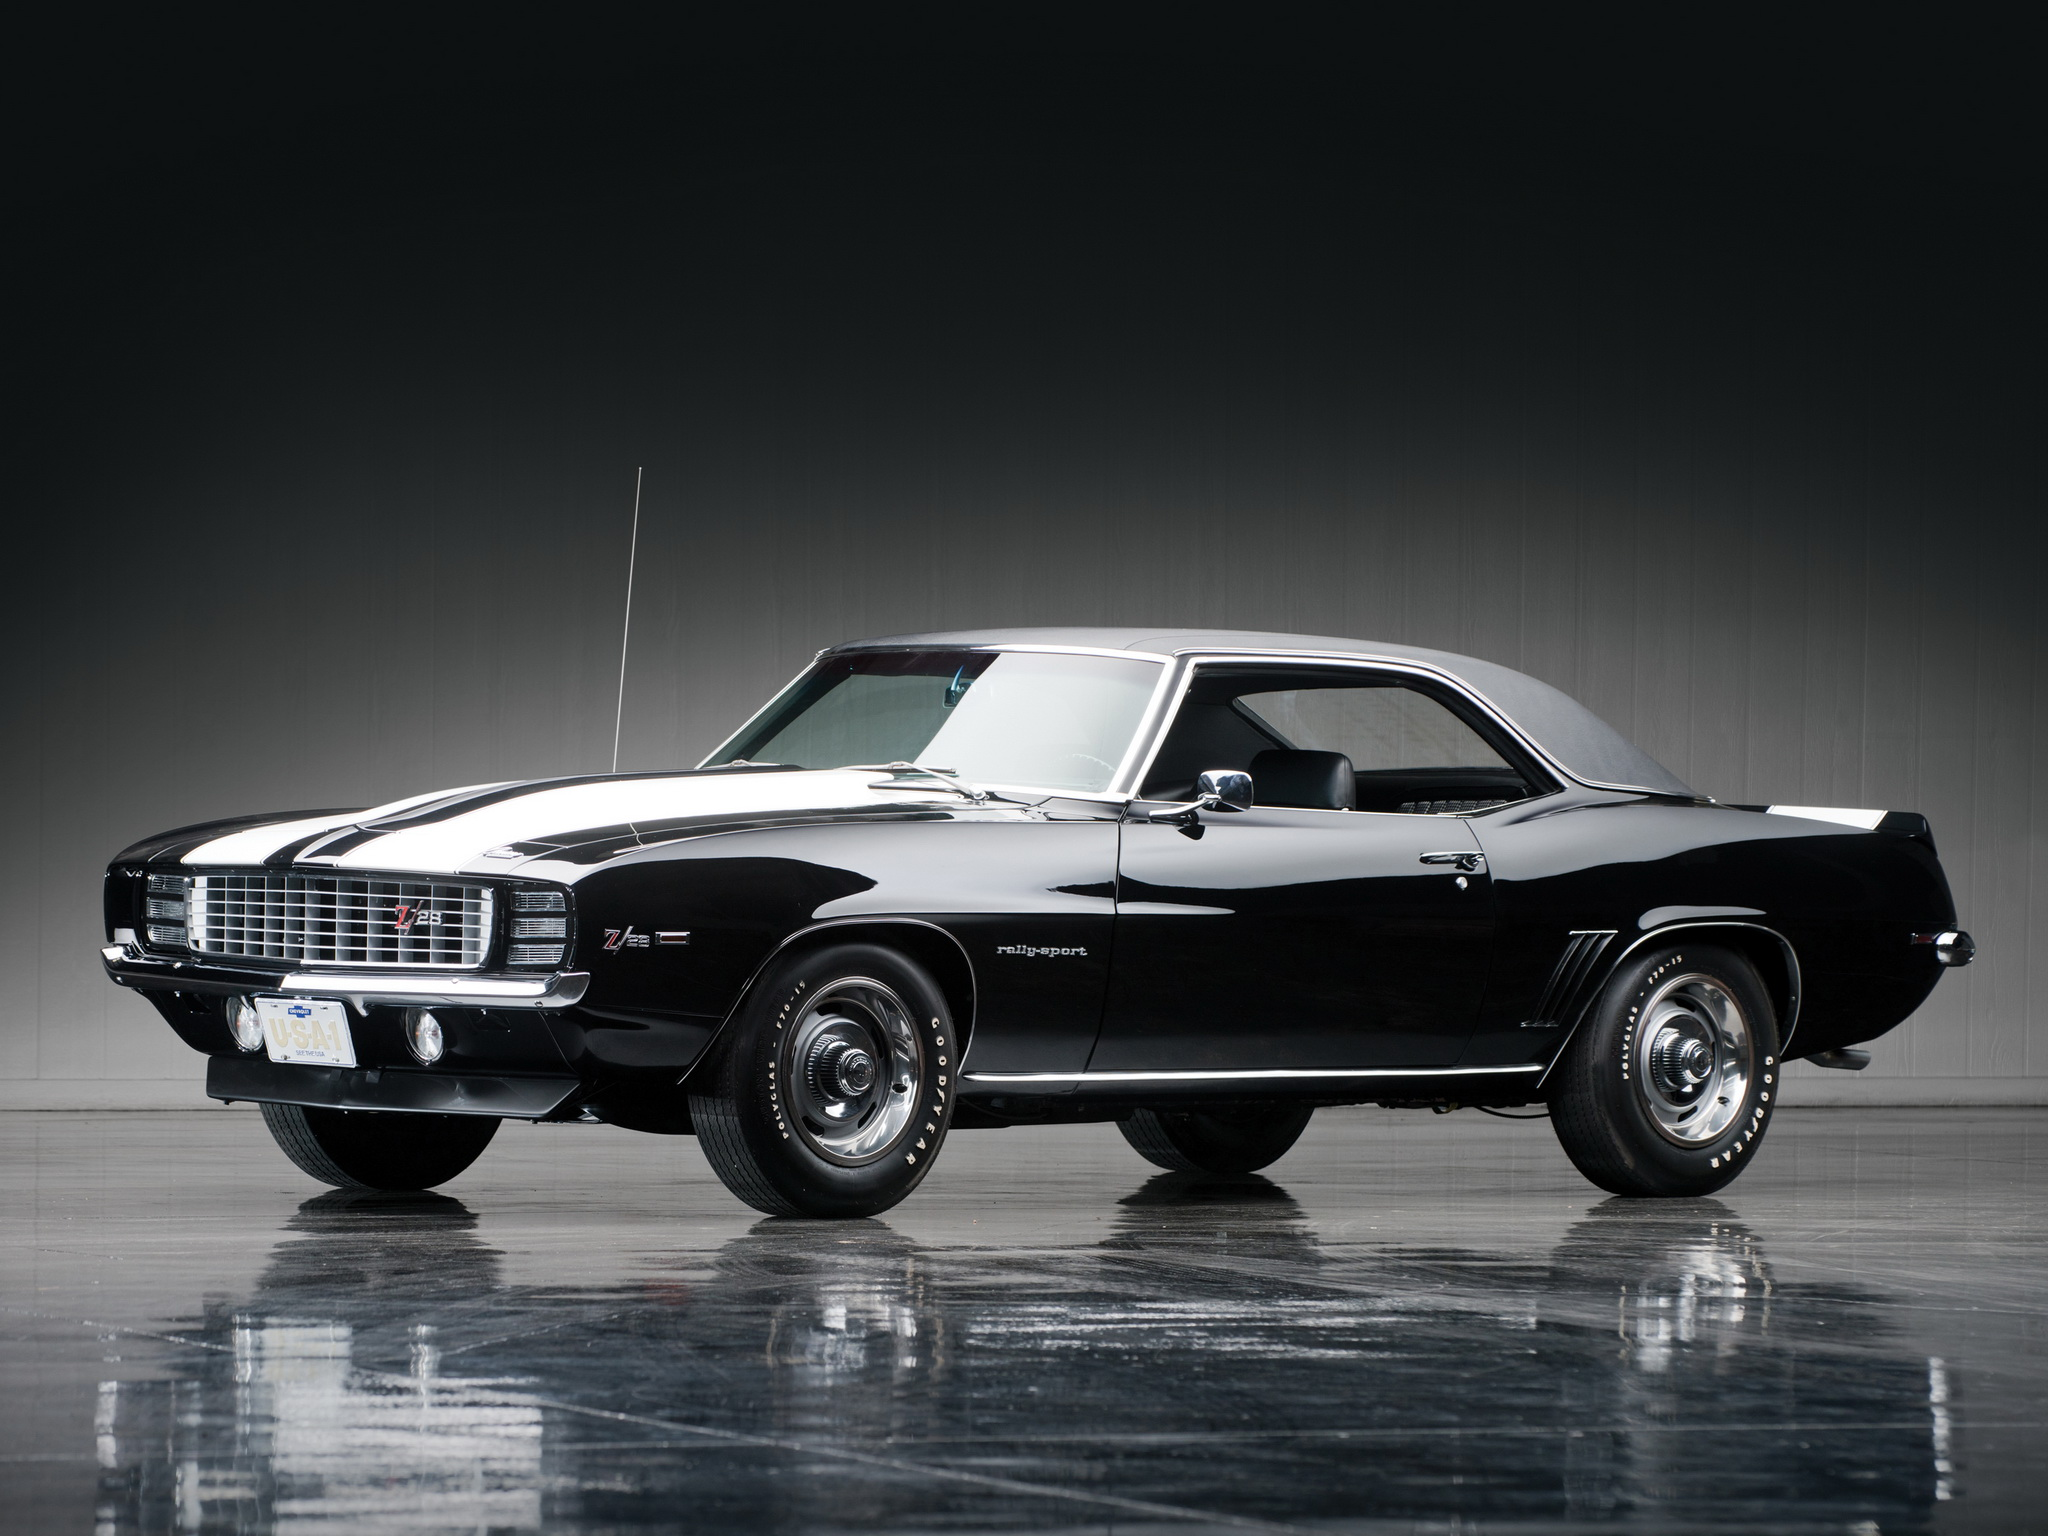 1969 chevrolet camaro z28 r s classic muscle g wallpaper 2048x1536 114525 wallpaperup - Camaro 2014 Z28 Wallpaper